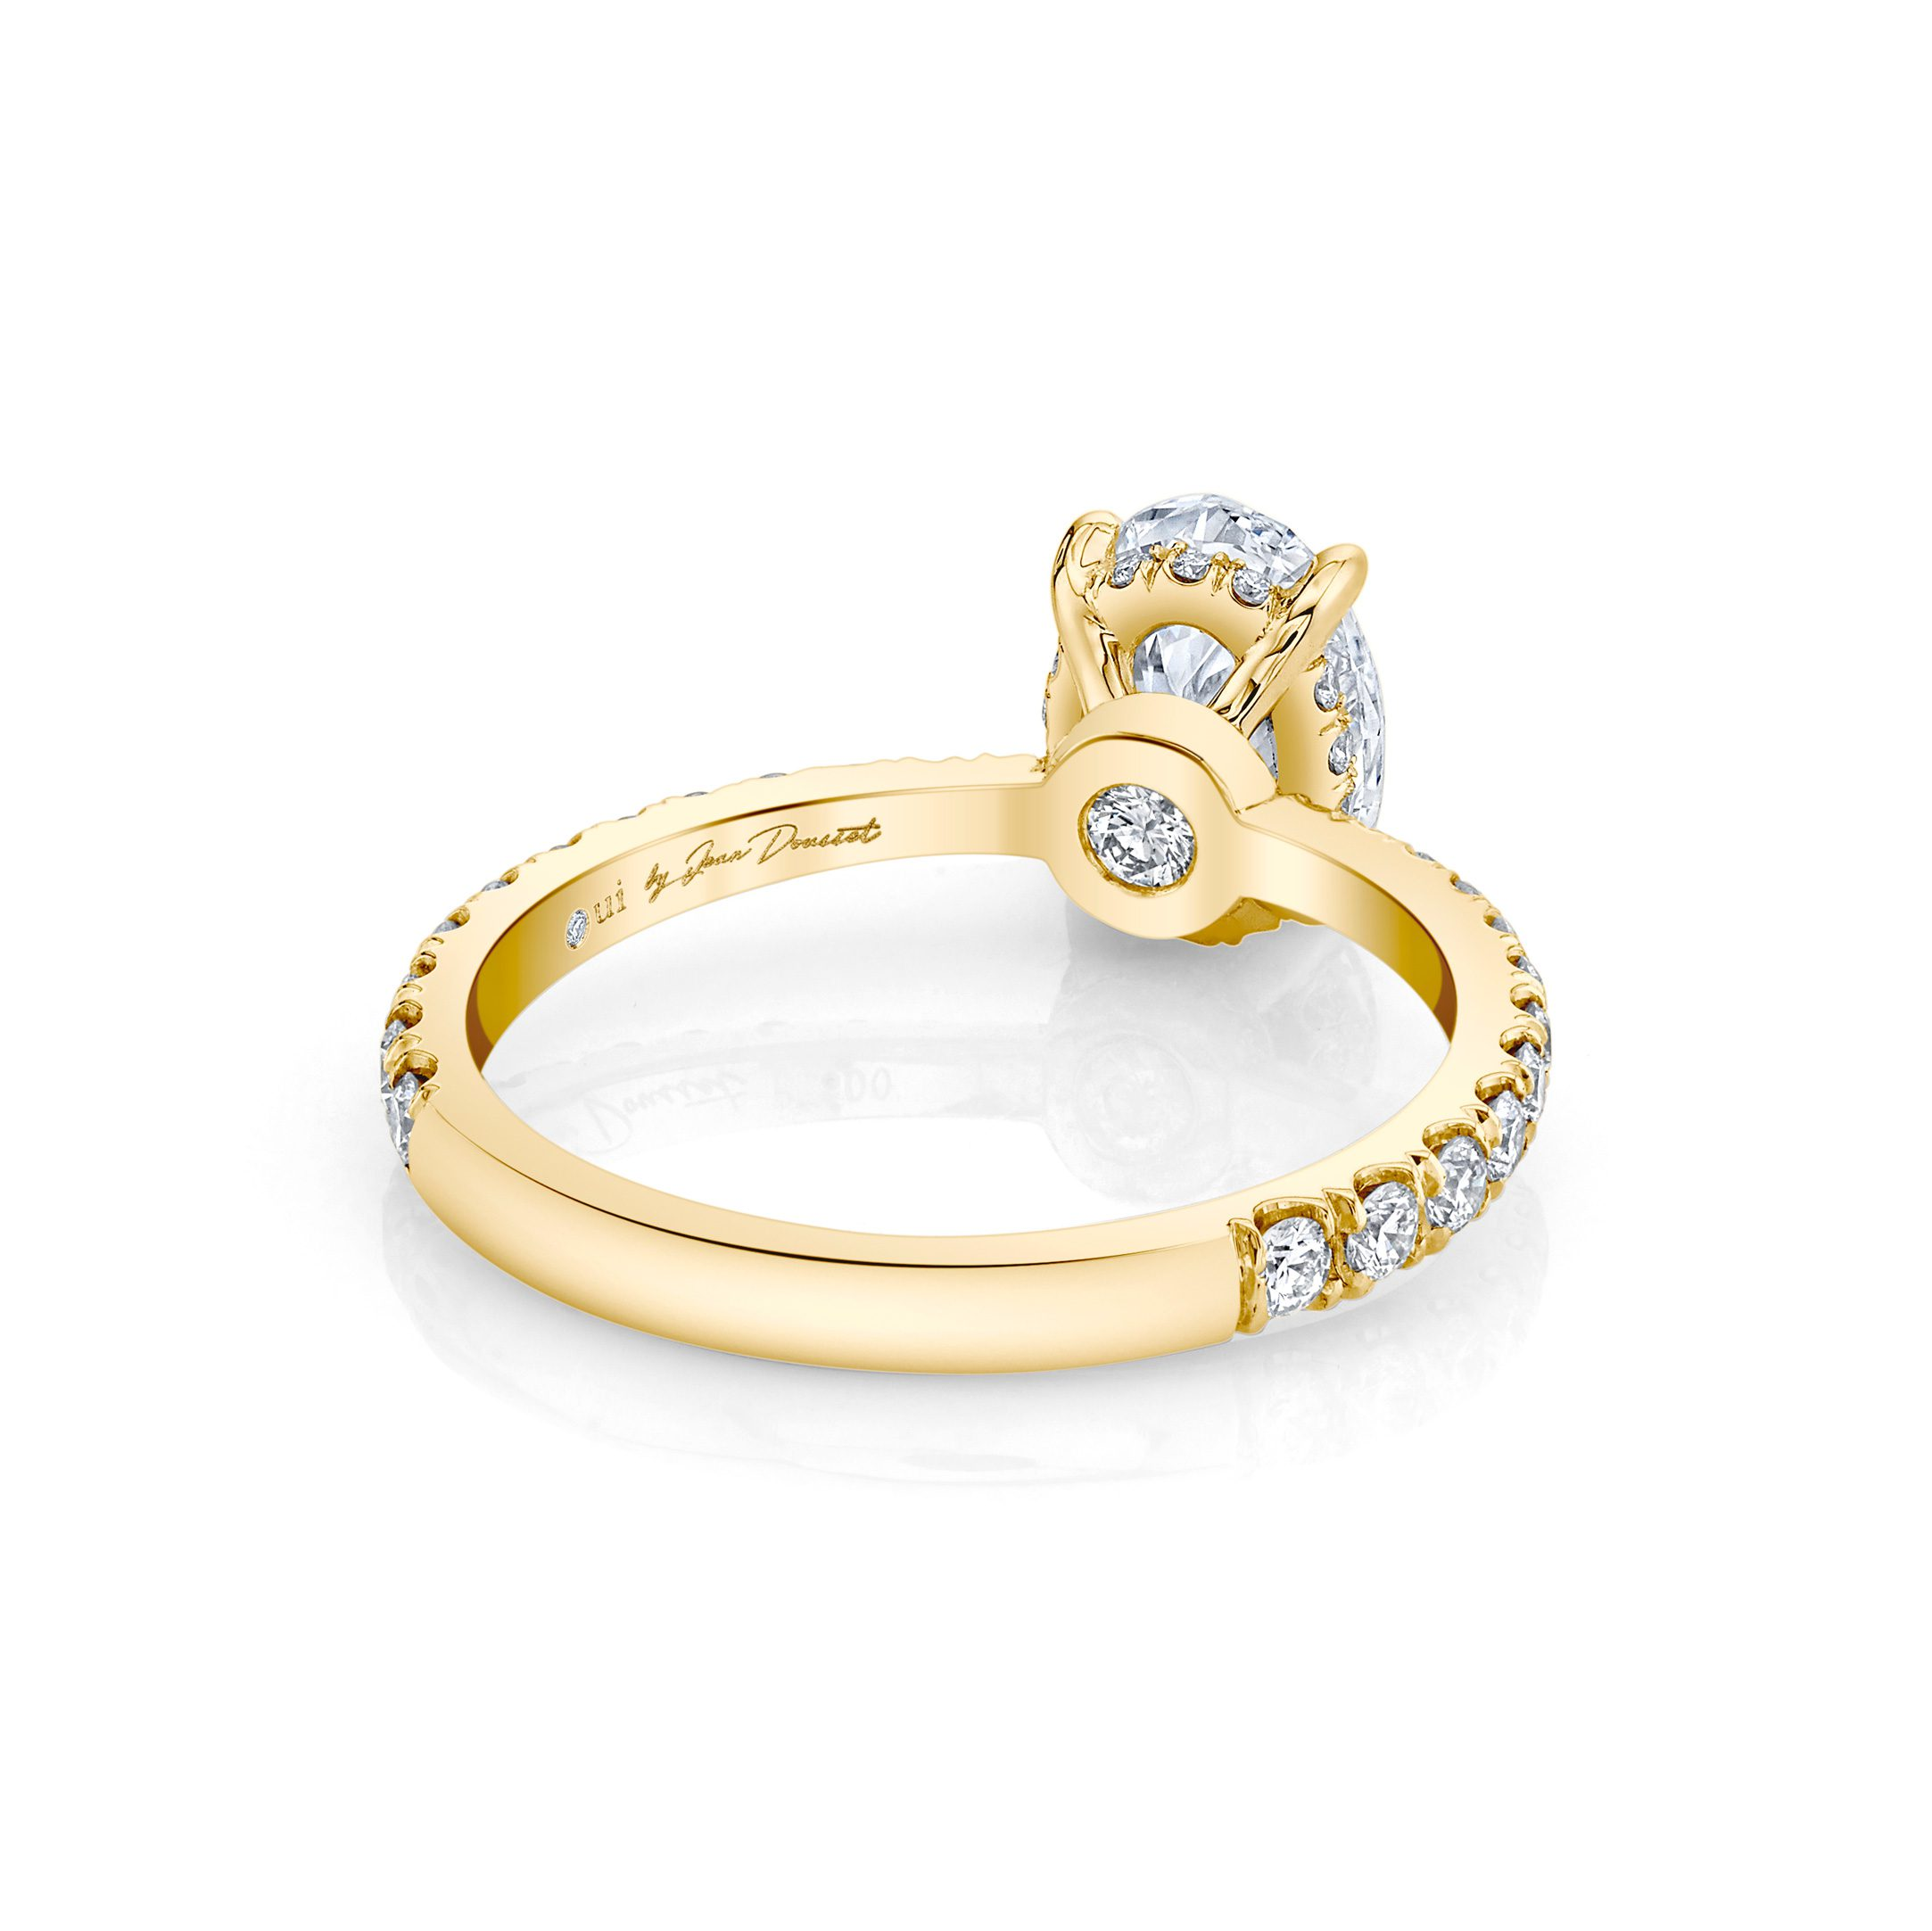 Eloise Oval Solitaire Engagement Ring with a diamond pavé band in 18k Yellow Gold Back View by Oui by Jean Dousset